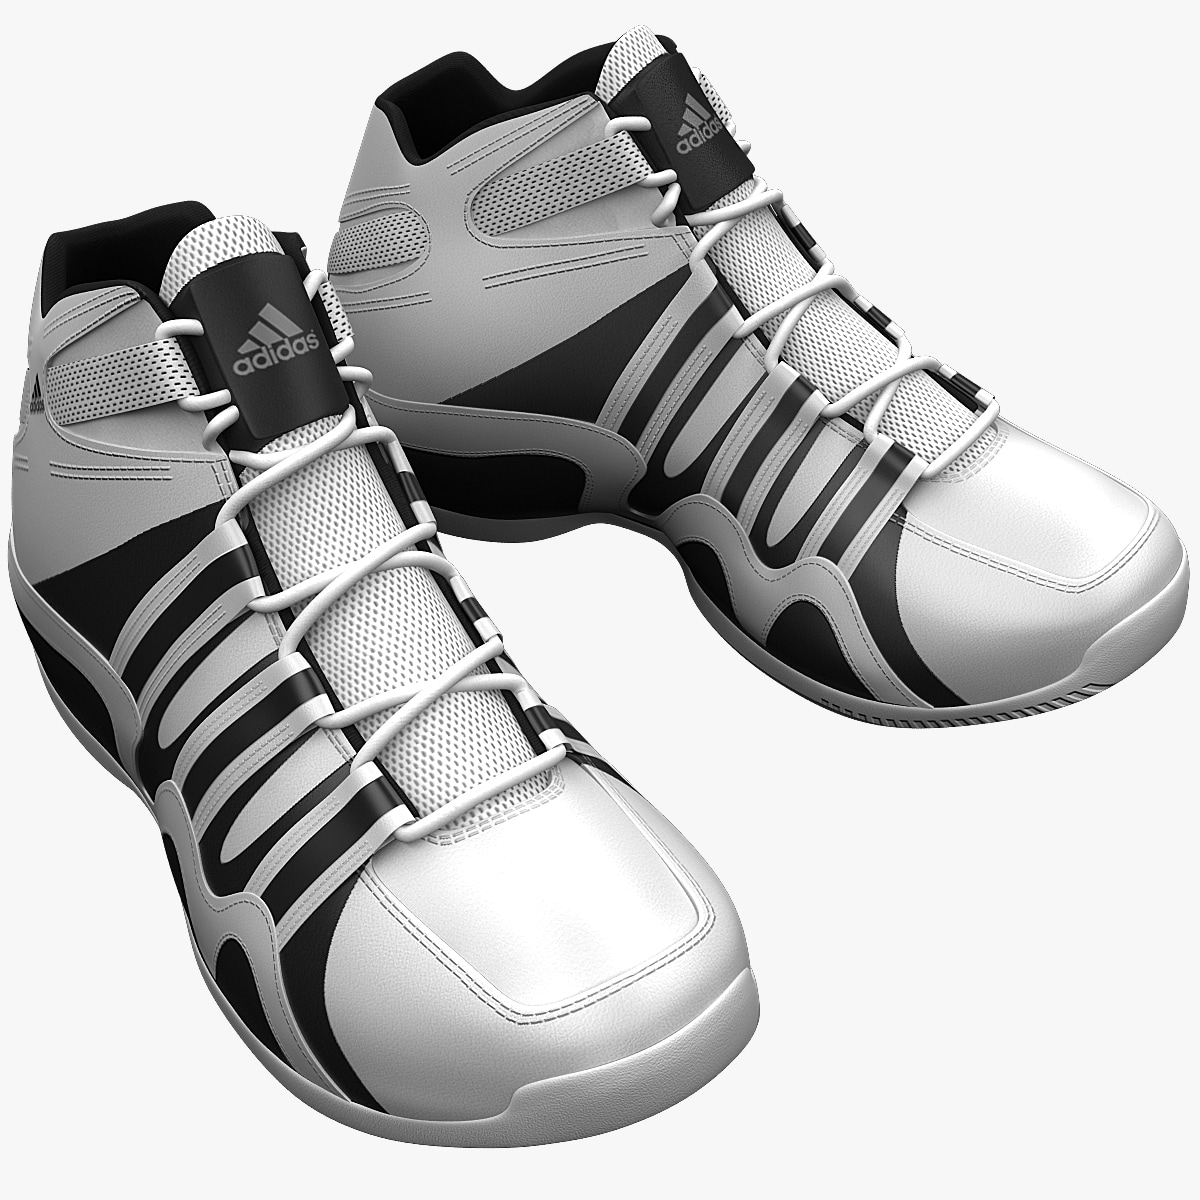 Basketball_Shoes_Adidas_Crazy_Feather_00.jpg